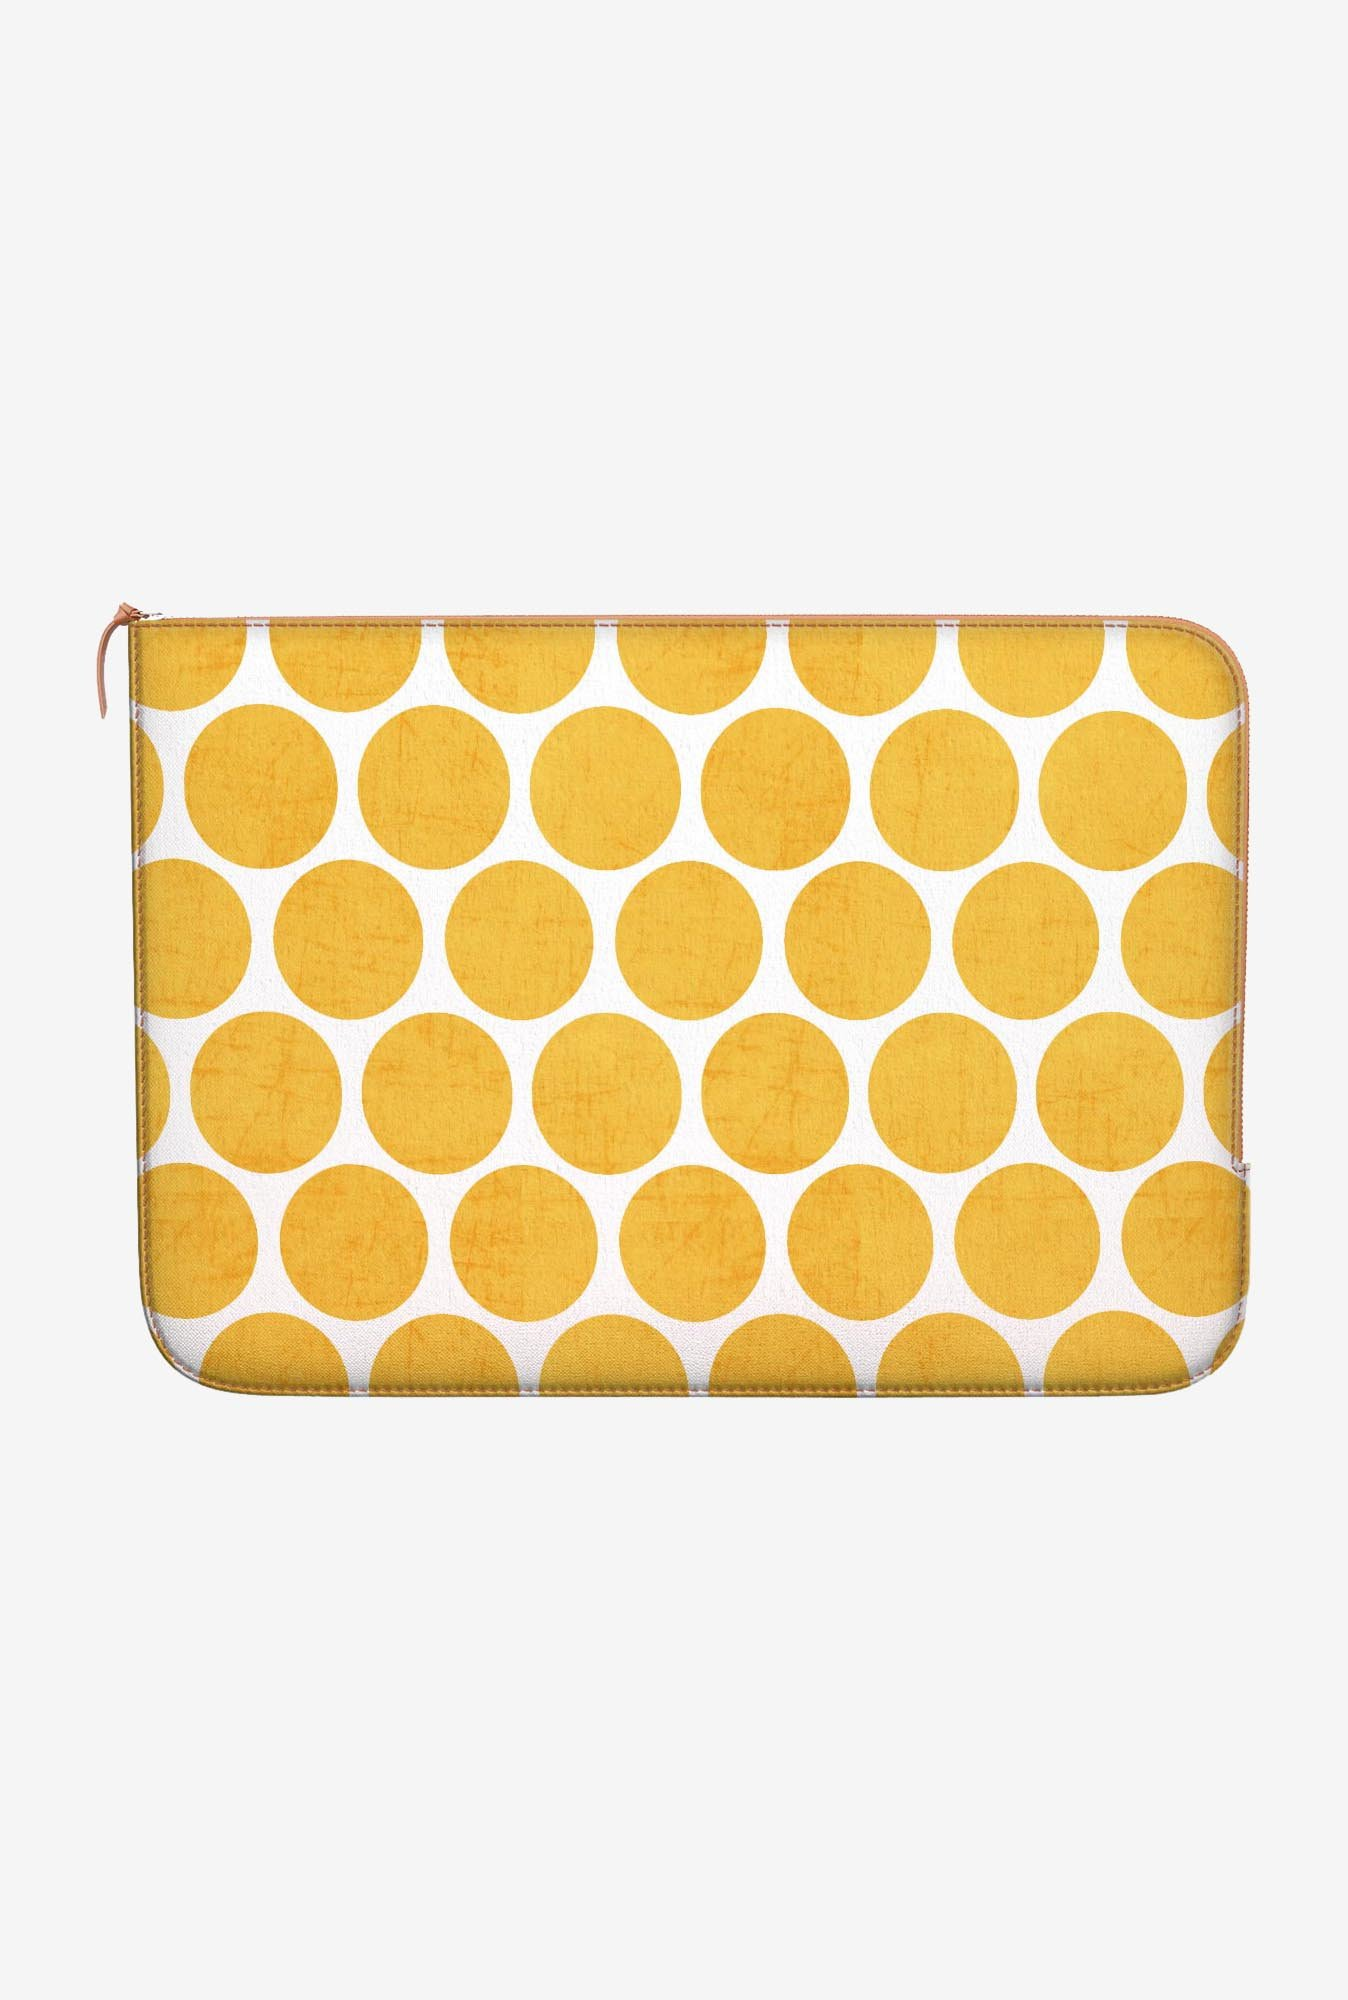 DailyObjects Yellow Dots MacBook Air 11 Zippered Sleeve